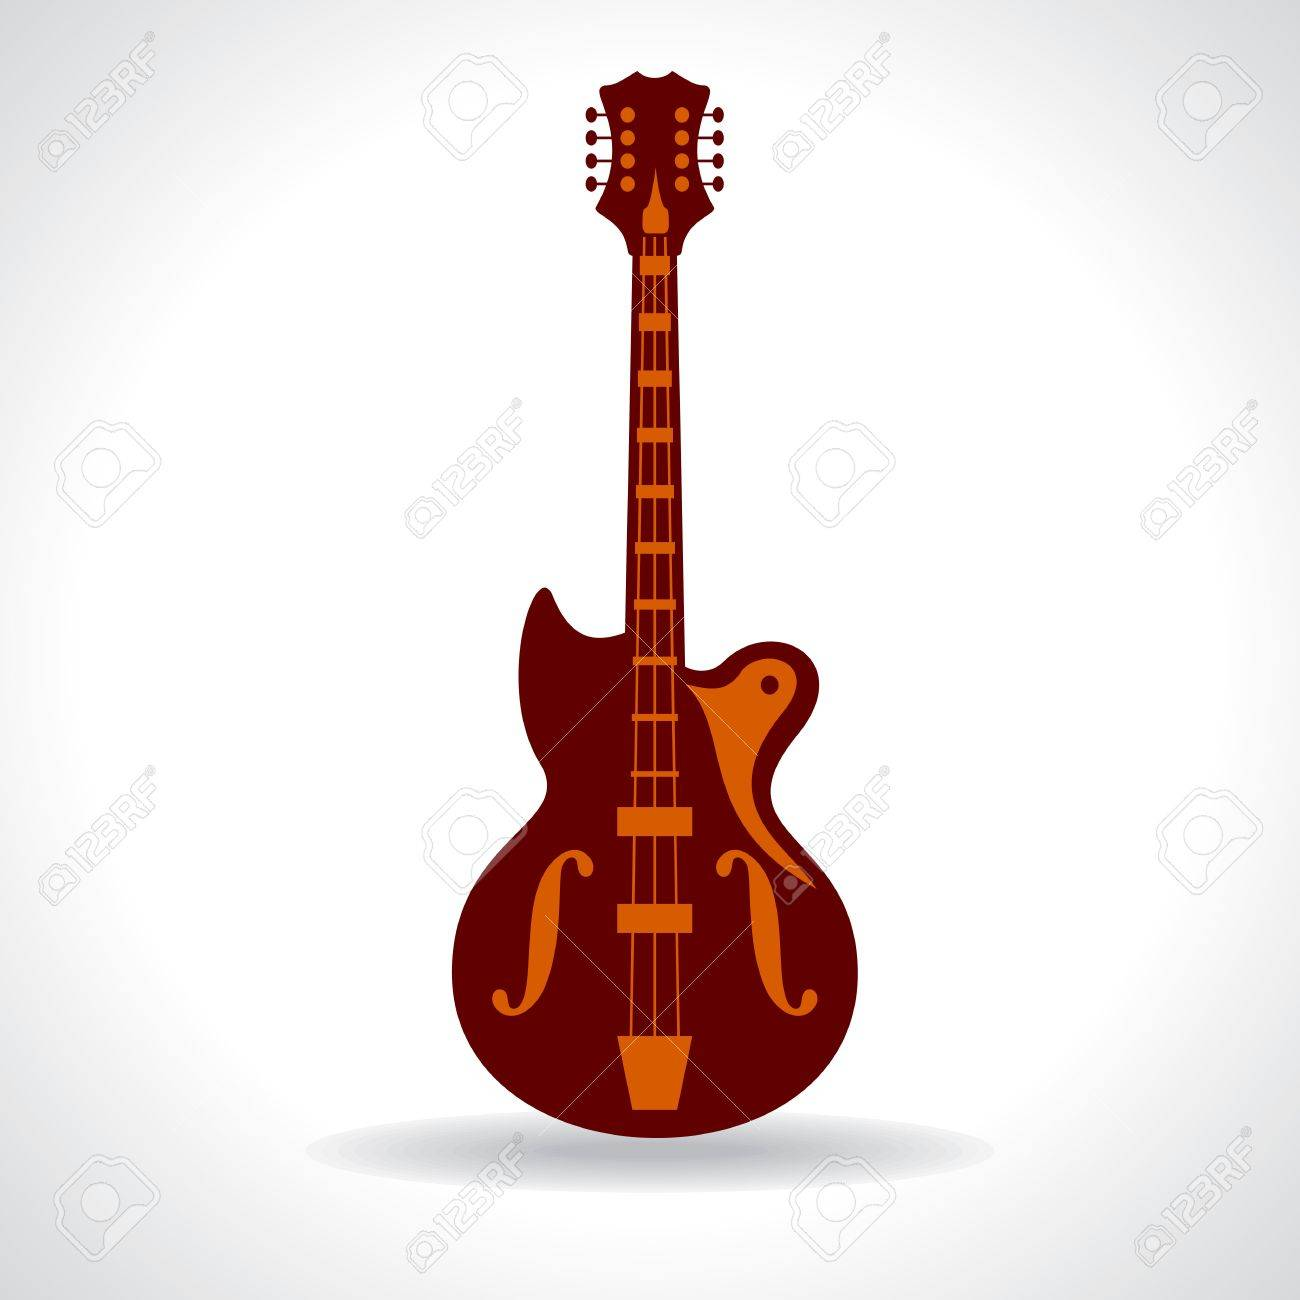 Line Drawing Of Guitar Stock Vector